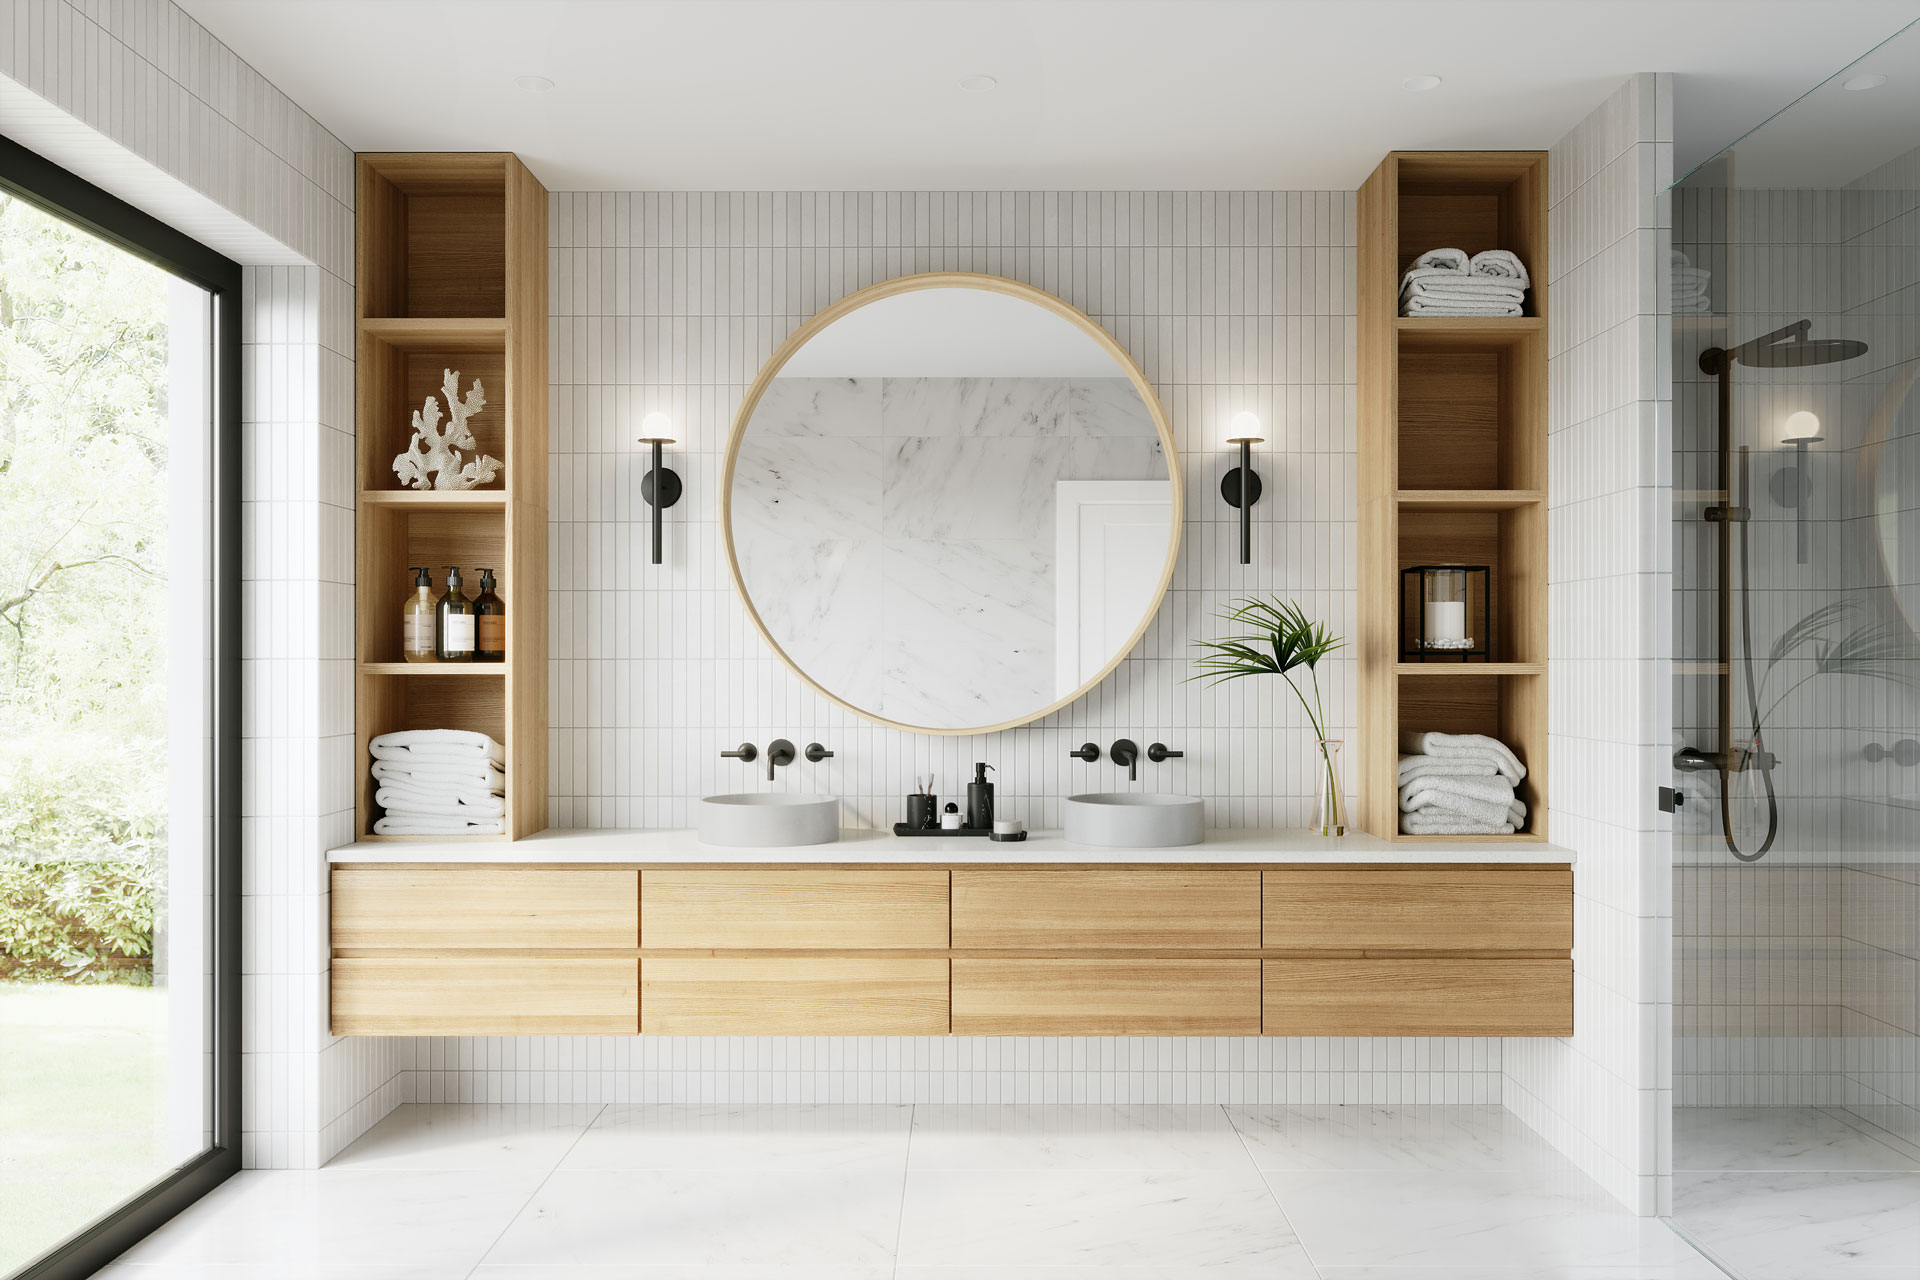 Product Visualization for Bathroom Furniture